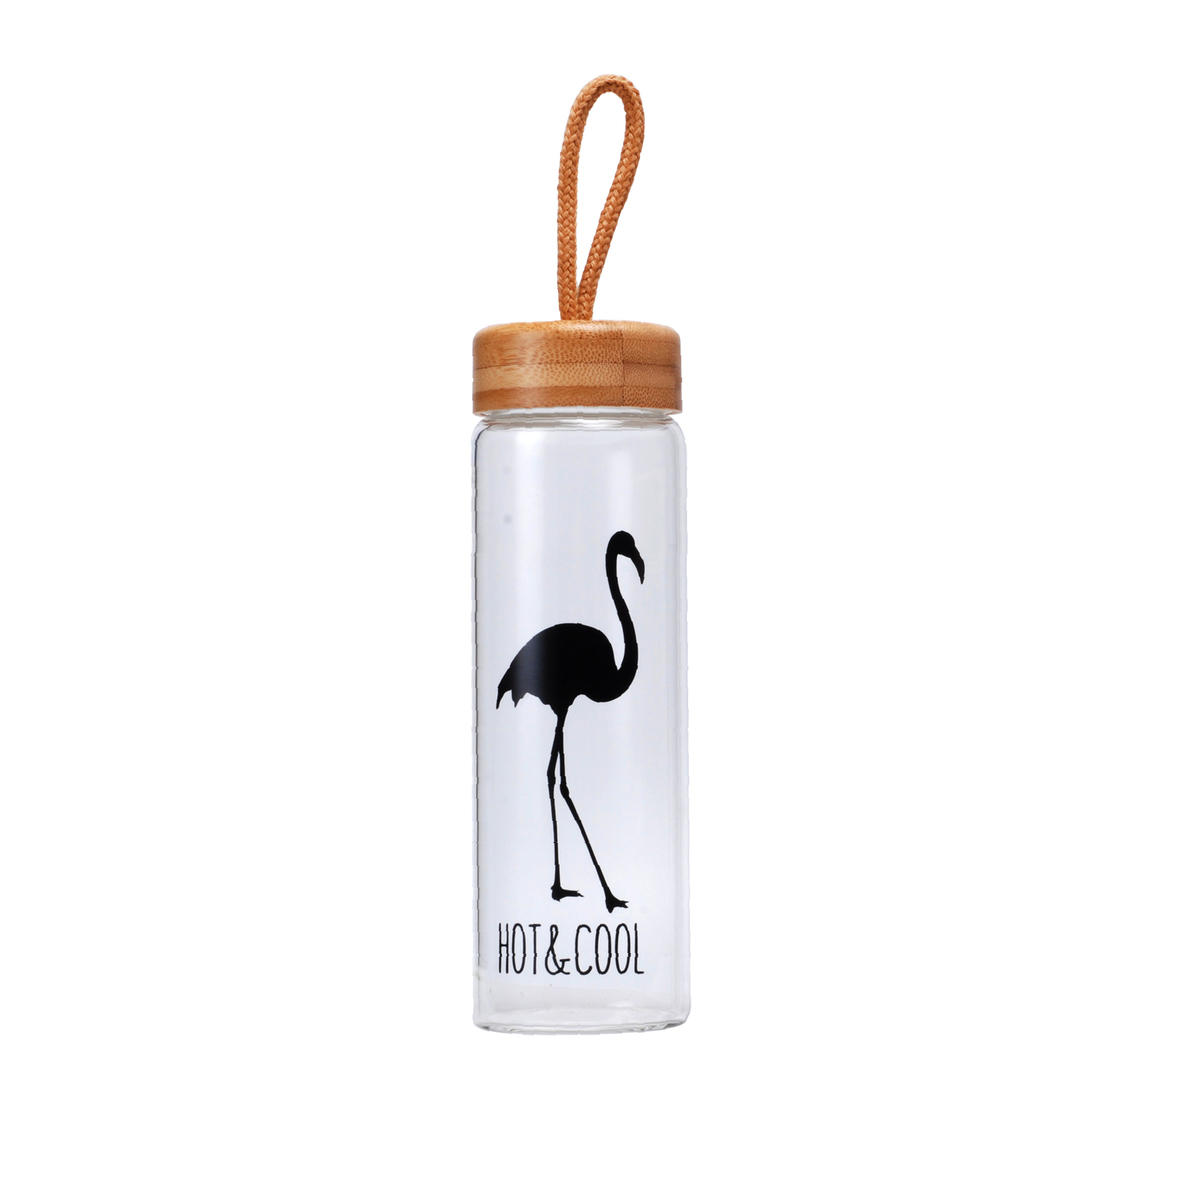 450 Ml Glass Water Bottles With Bamboo Lid Rope Straight Drink Hiking Creative My Bottle Drinkware Clear Brief Portable 5